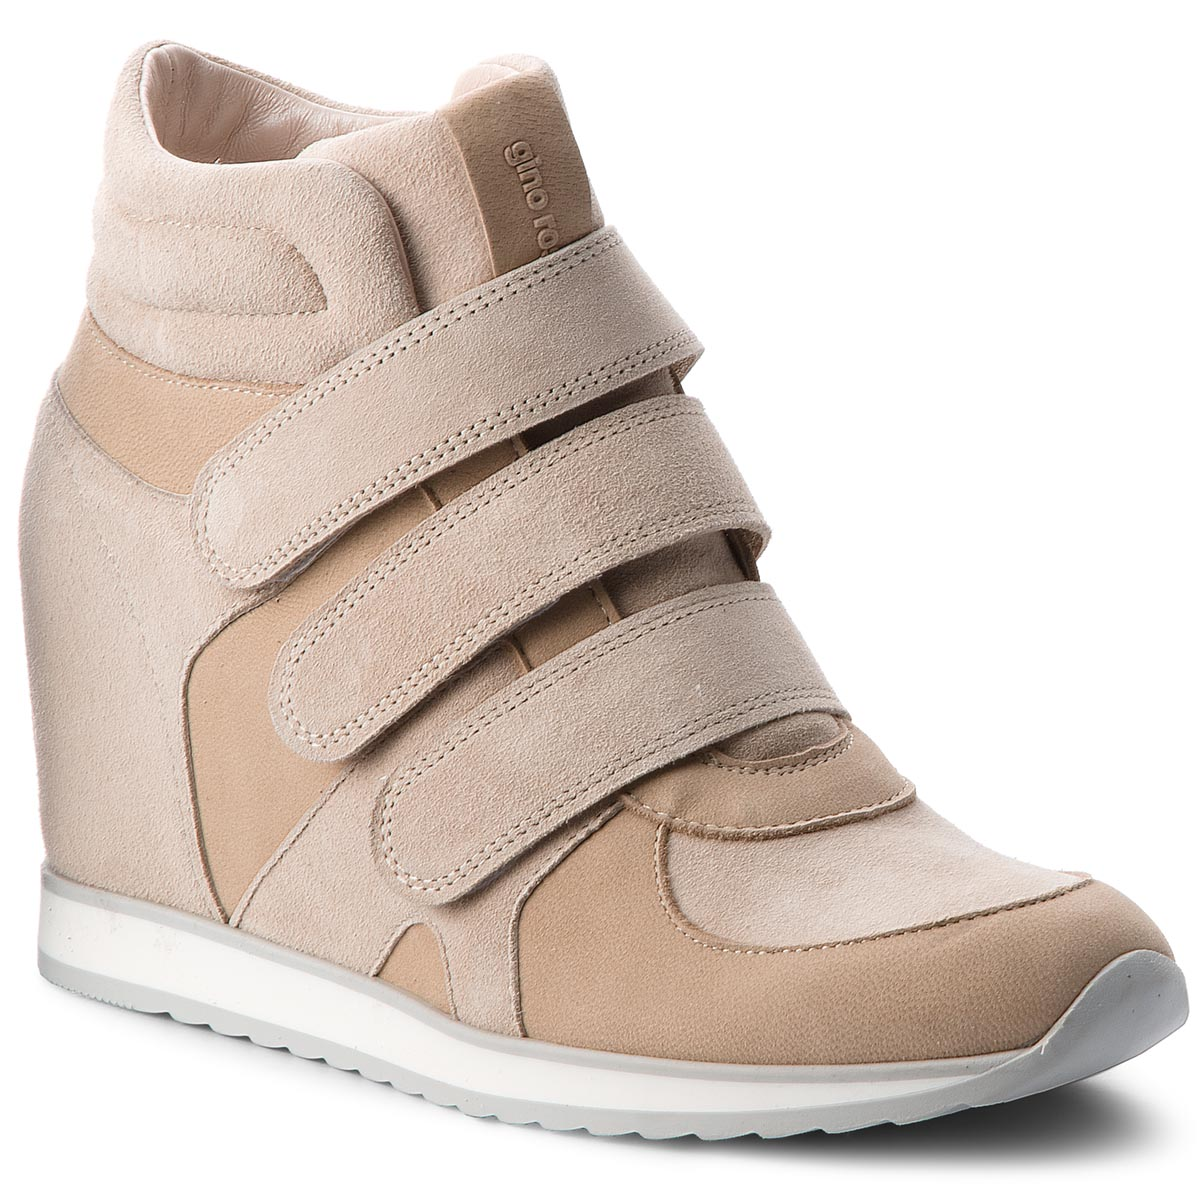 Sneakers GINO ROSSI - DTH894-AG3-0369-0506-0 02/12